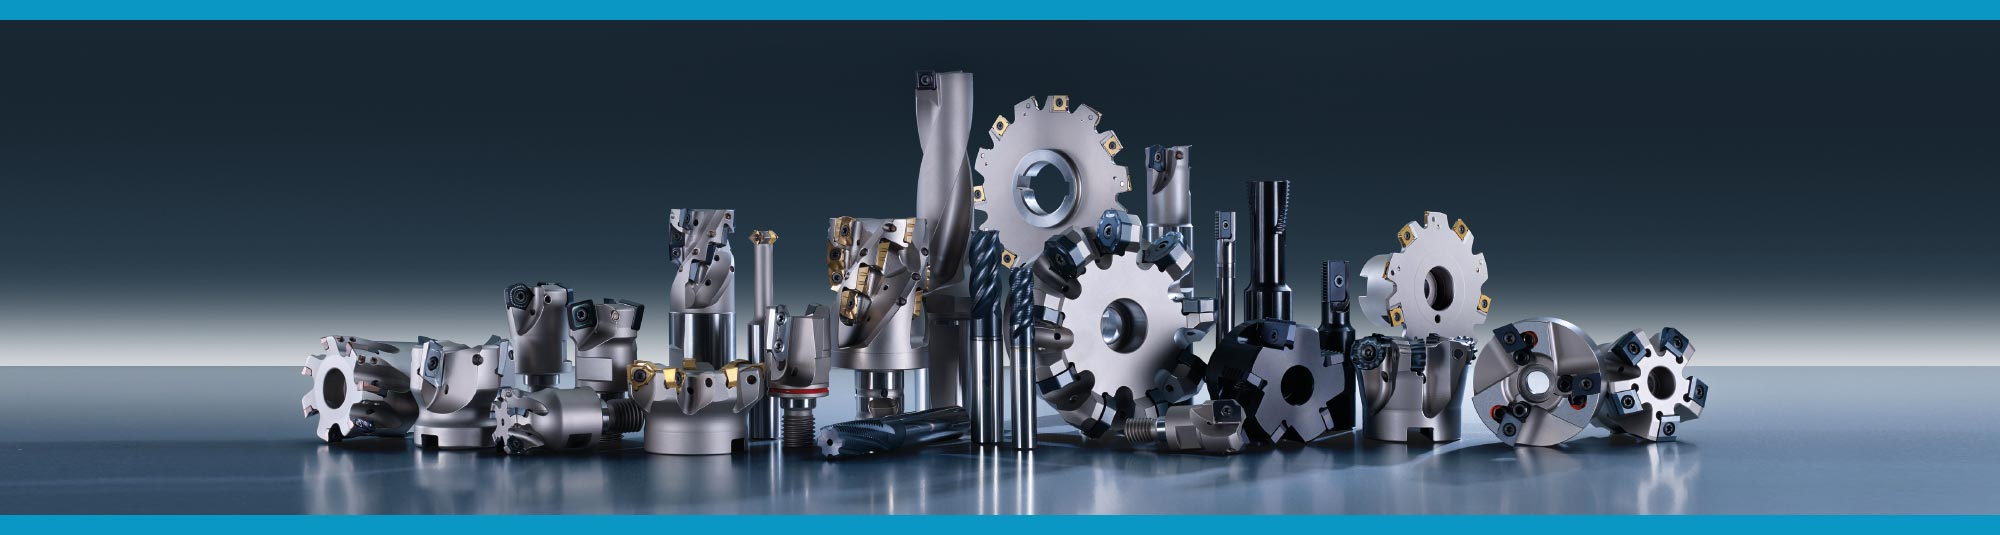 Innotool UK, Helical end mills, face mills, square shoulder cutters, face cutters, drills, thread milling